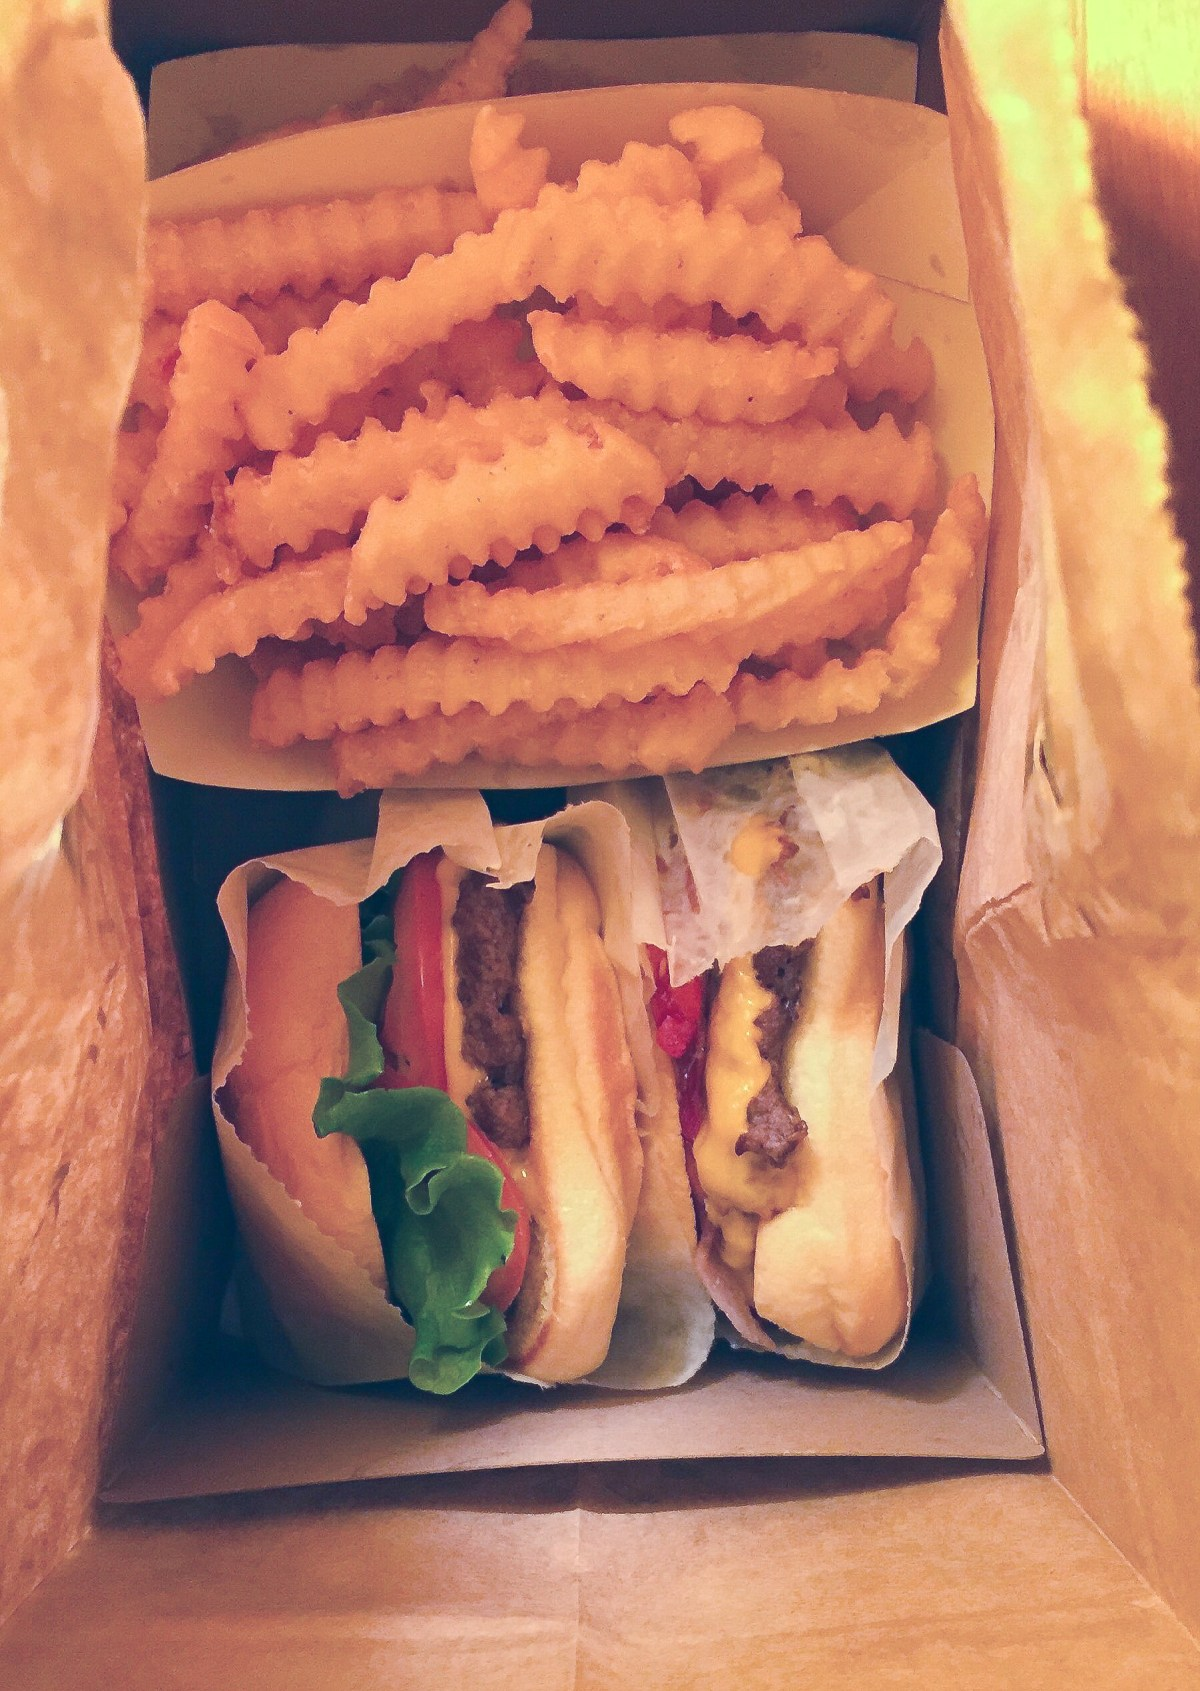 72 Hours in Chicago Shake Shack